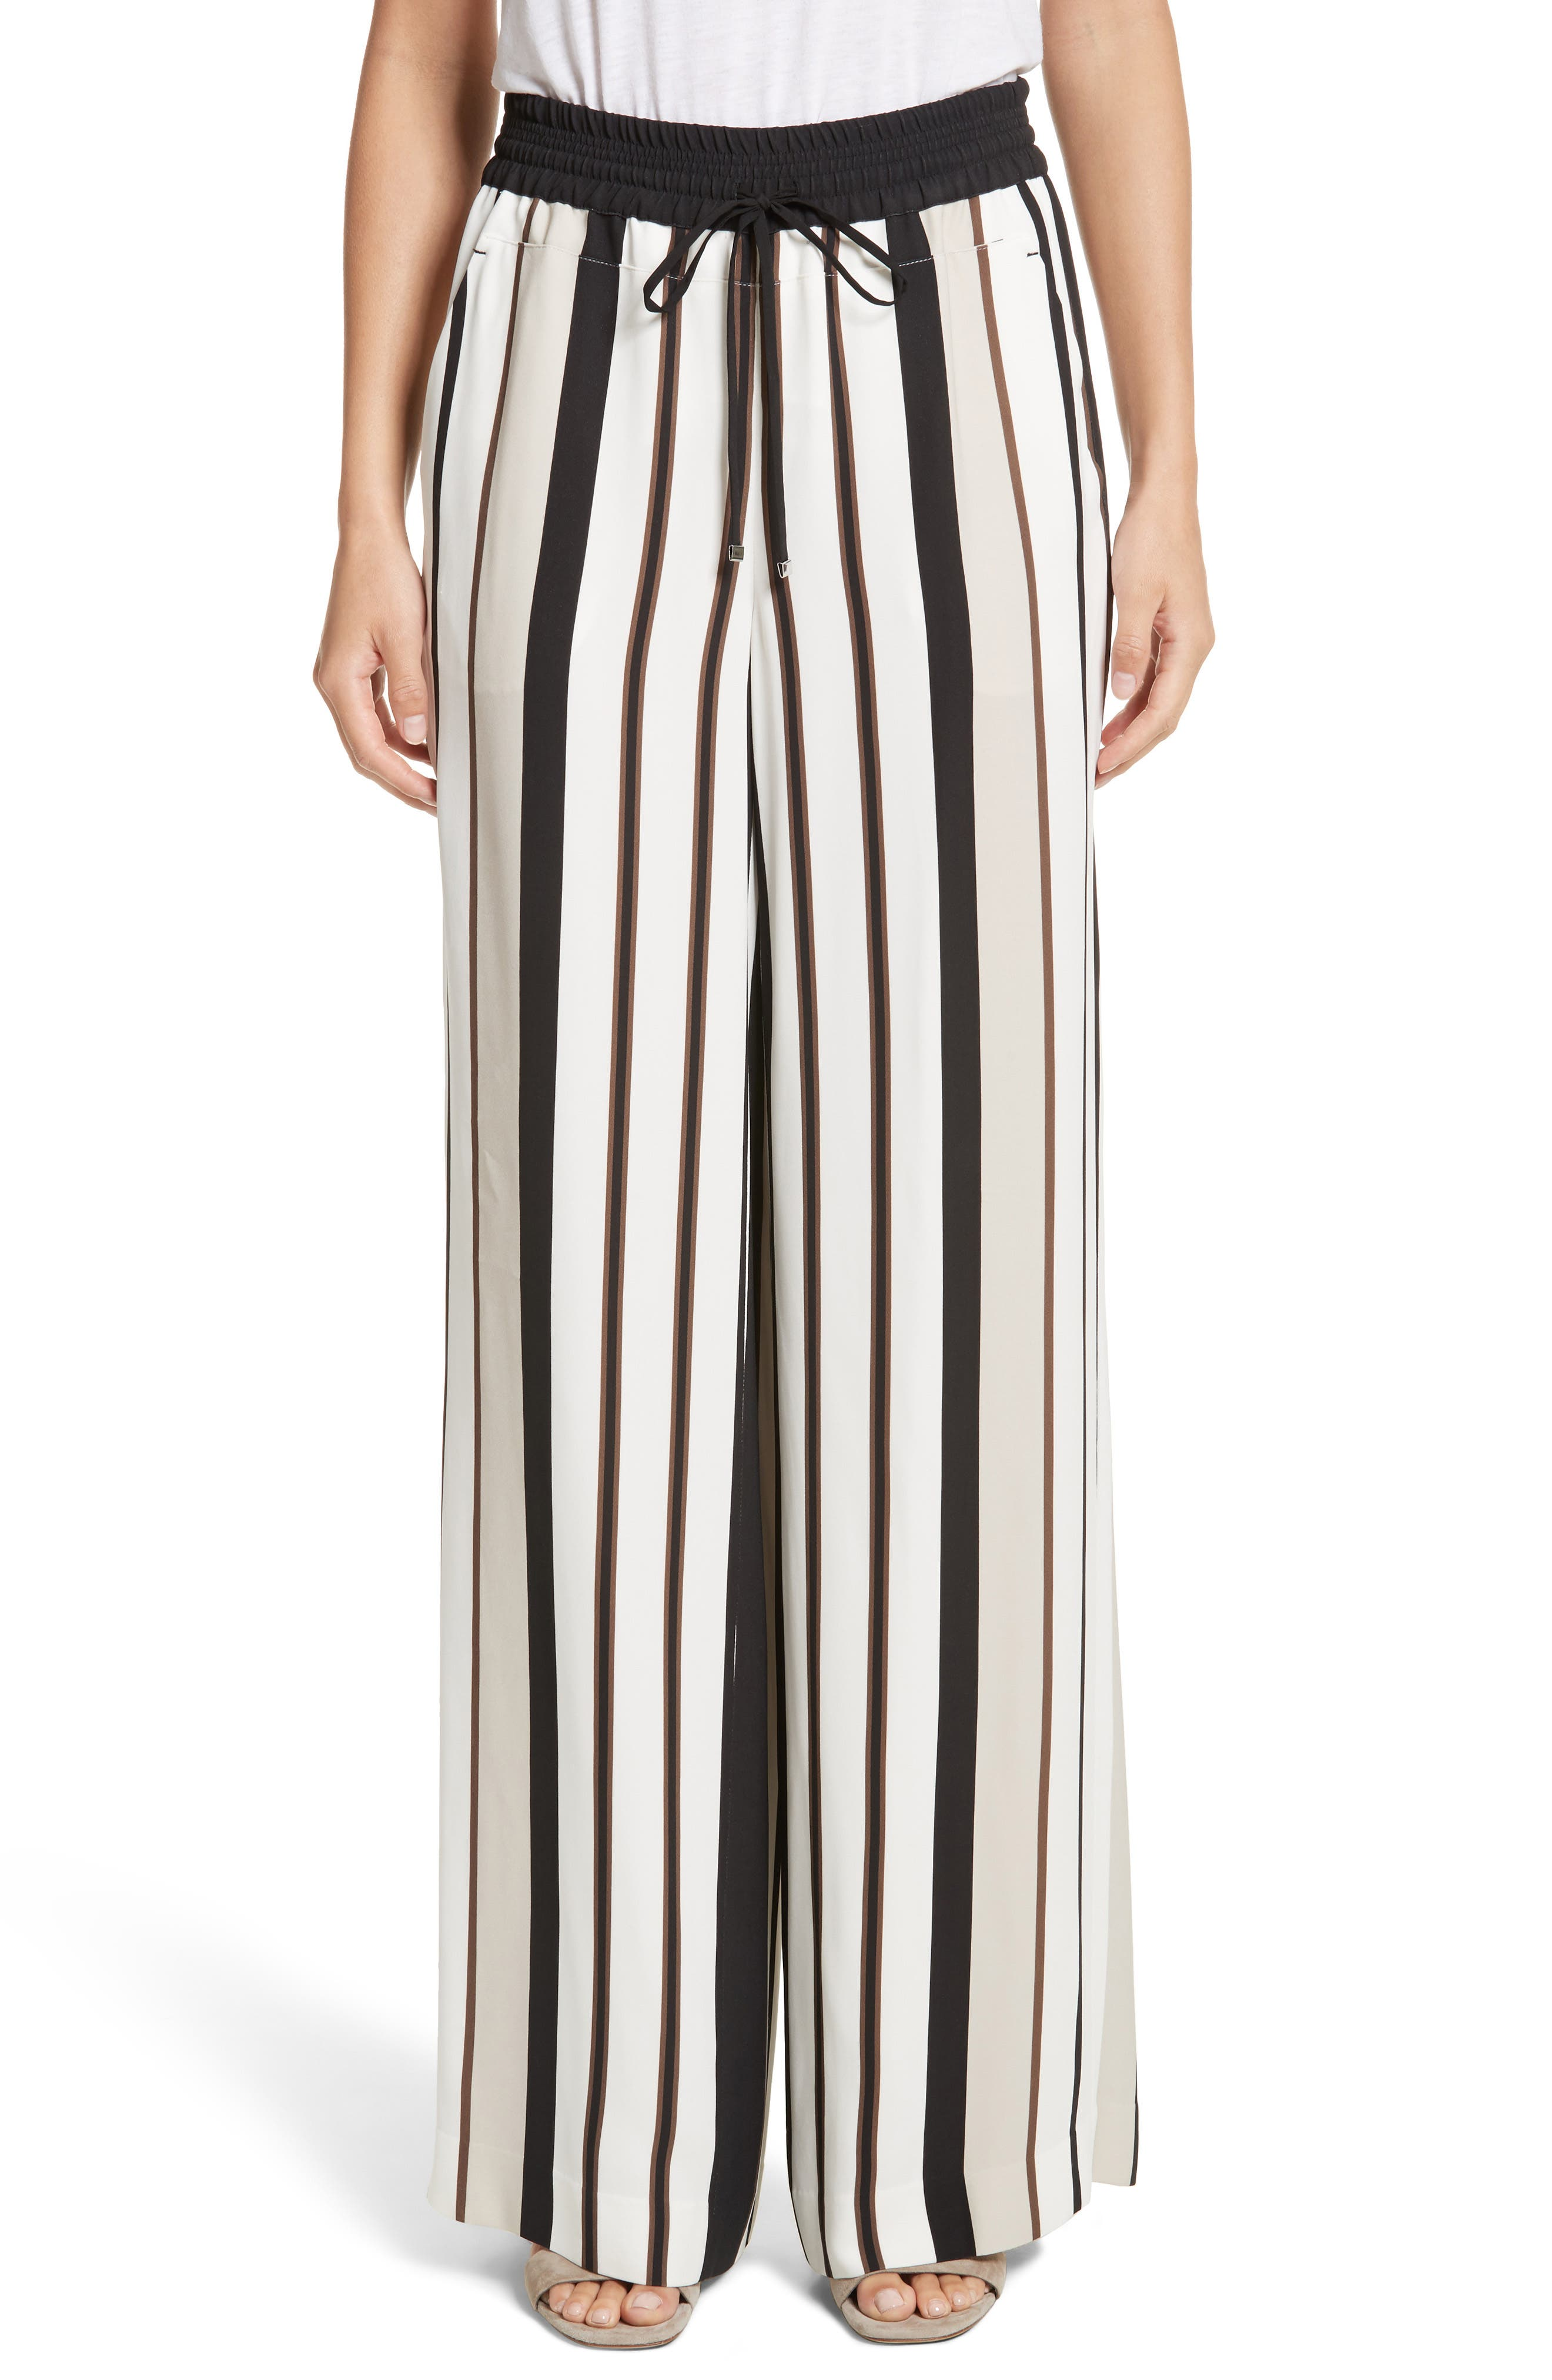 LAFAYETTE 148 NEW YORK,                             Allen Legacy Stripe Drape Cloth Pants,                             Main thumbnail 1, color,                             001